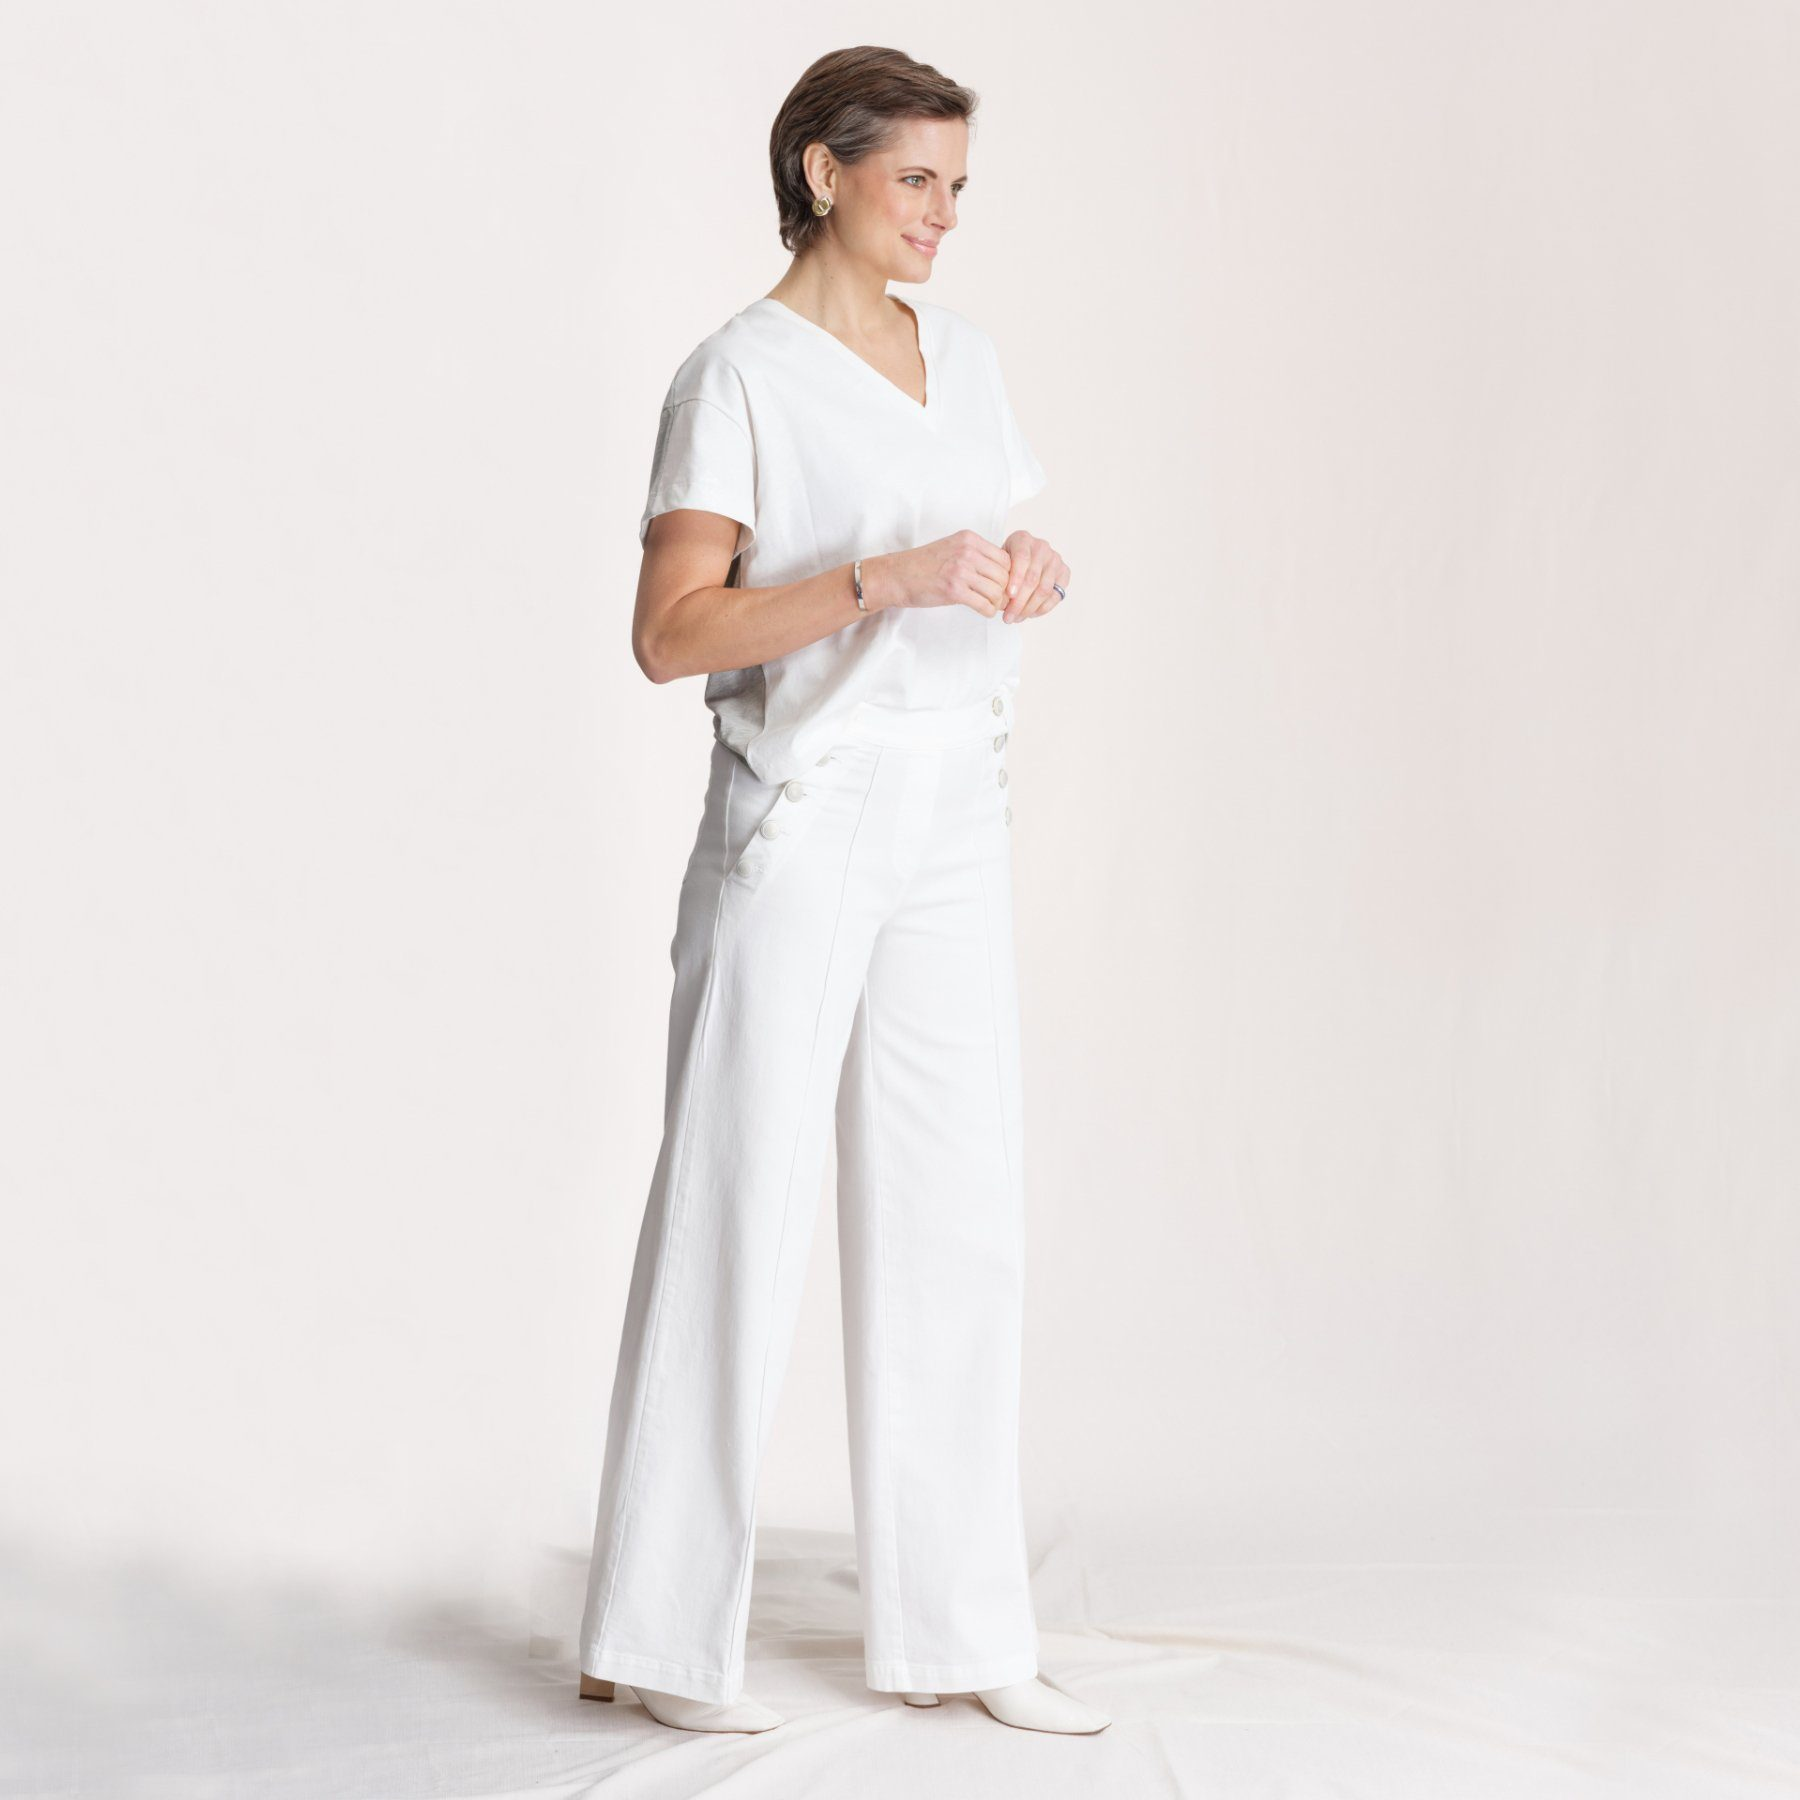 woman wearing white t shirt and white sailor pants in front of white background